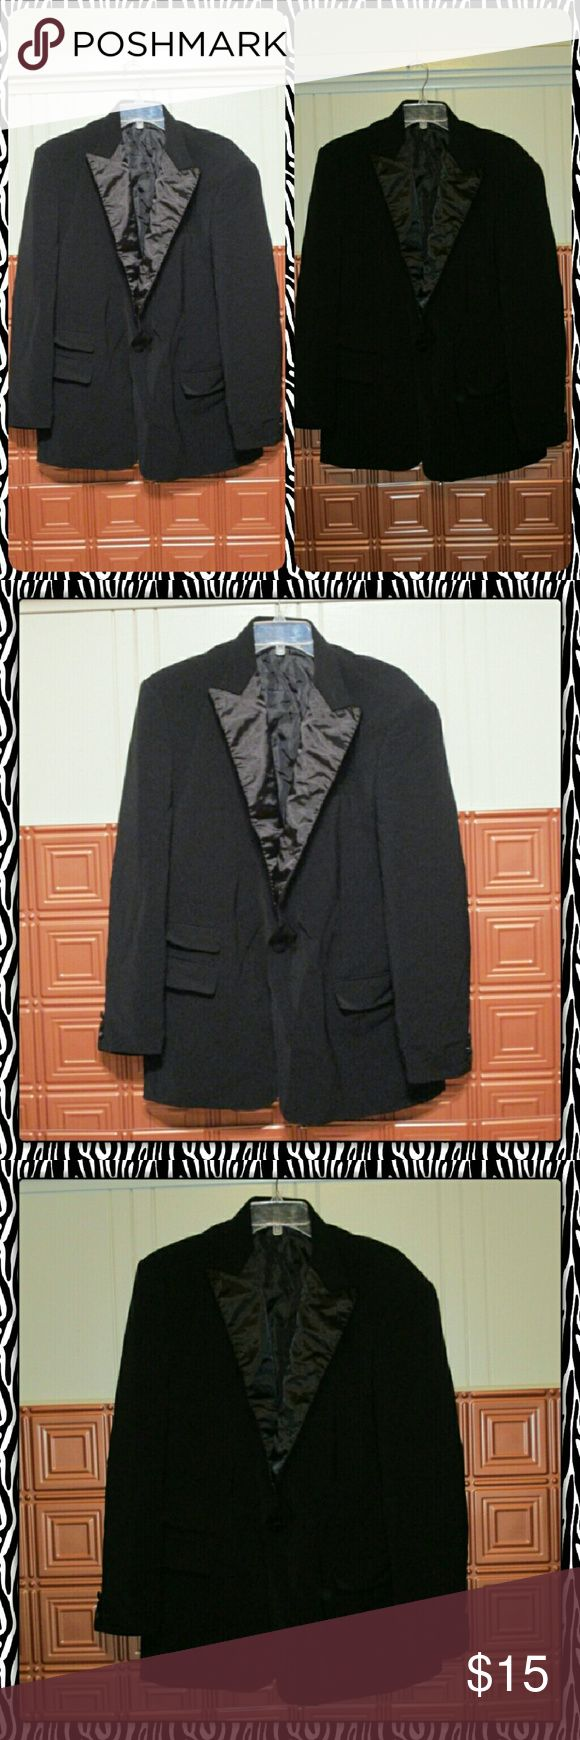 Mens tuxedo style jacket Used men's tuxedo style jacket. No rips tears or stains IL Canto Suits & Blazers Sport Coats & Blazers